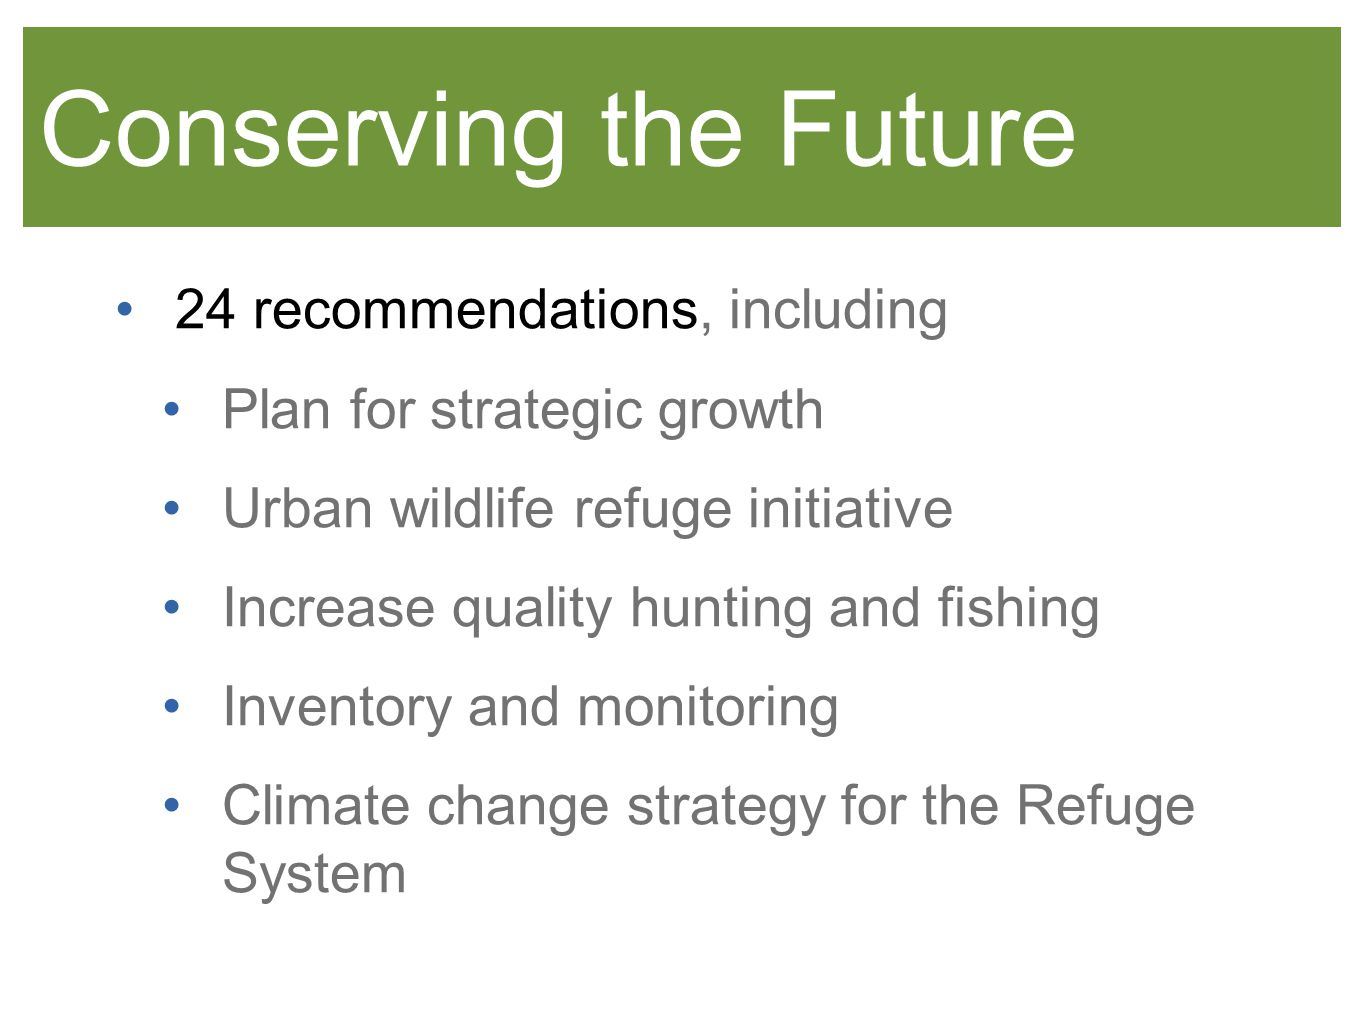 Conserving the Future 24 recommendations, including Plan for strategic growth Urban wildlife refuge initiative Increase quality hunting and fishing Inventory and monitoring Climate change strategy for the Refuge System